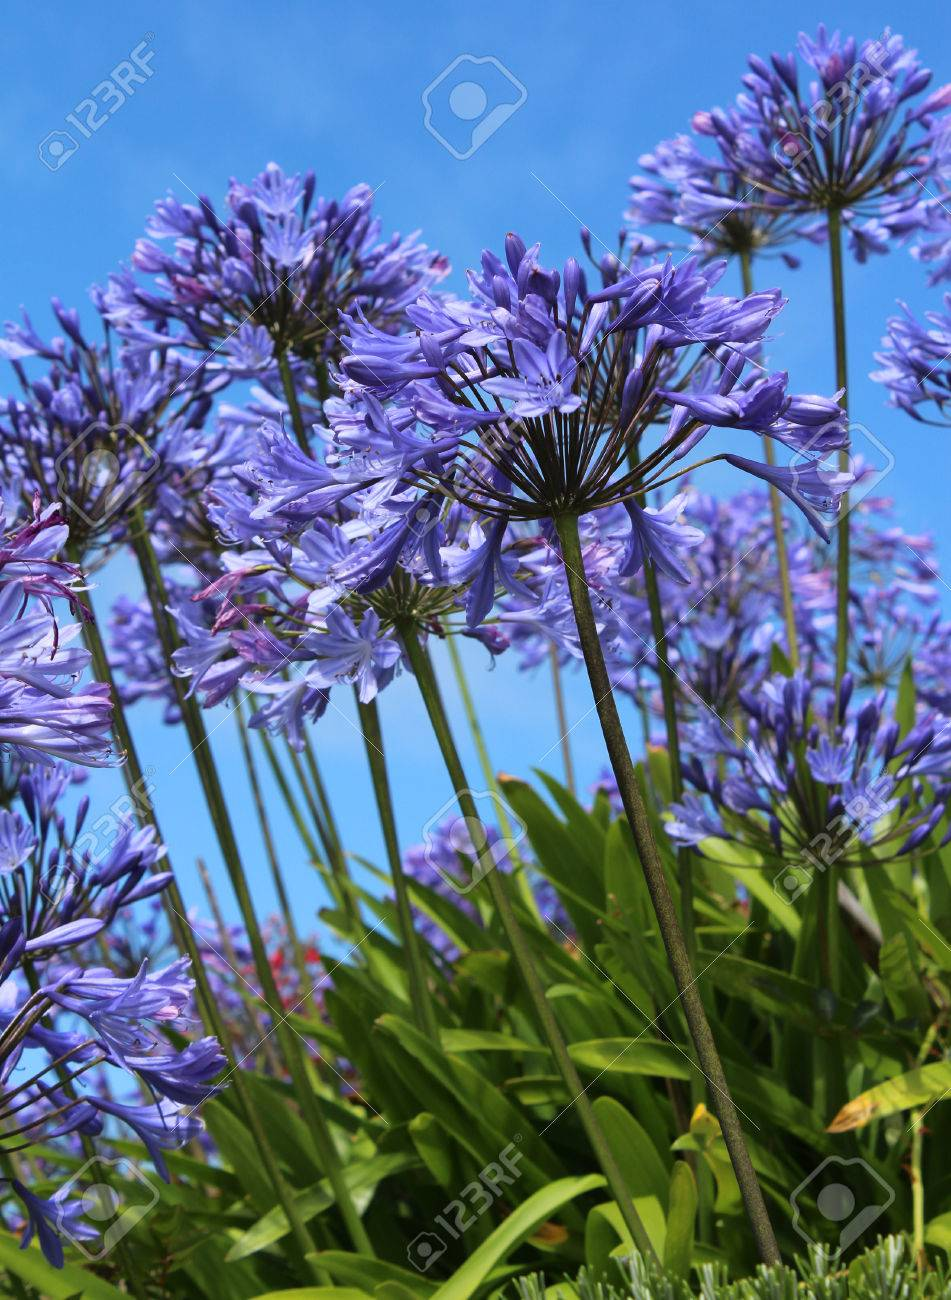 The bright blue flowers of agapanthus also known as african stock stock photo the bright blue flowers of agapanthus also known as african lily or lily of the nile against a background of blue sky izmirmasajfo